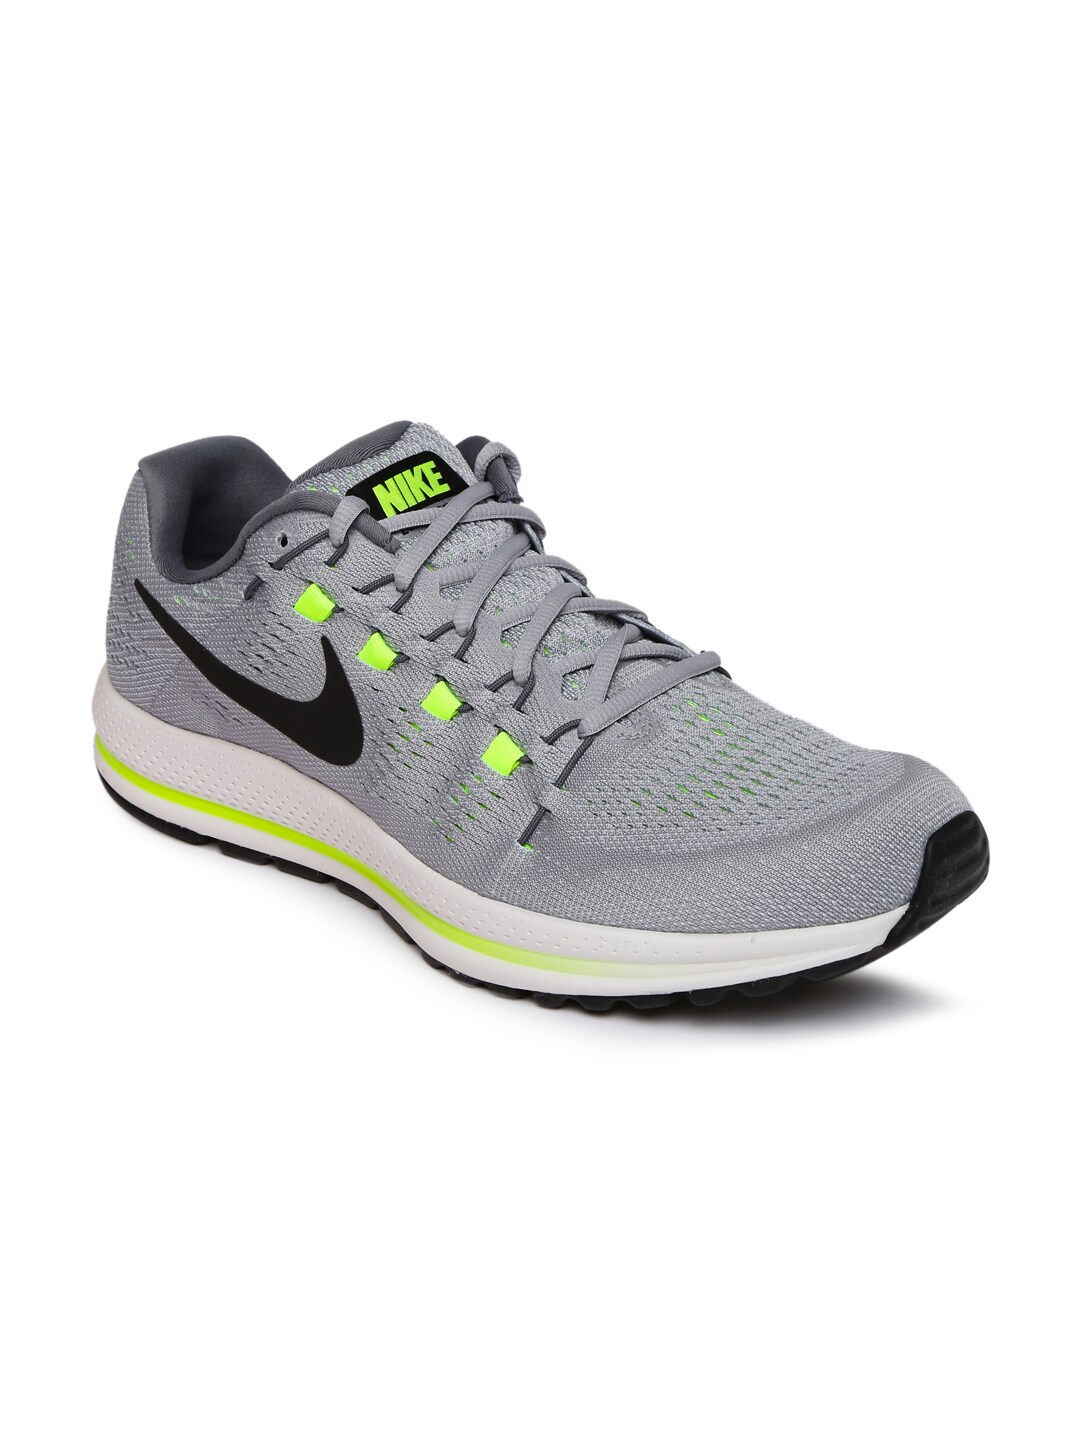 706bf6d3828db Nike Vomero - Buy Nike Vomero online in India